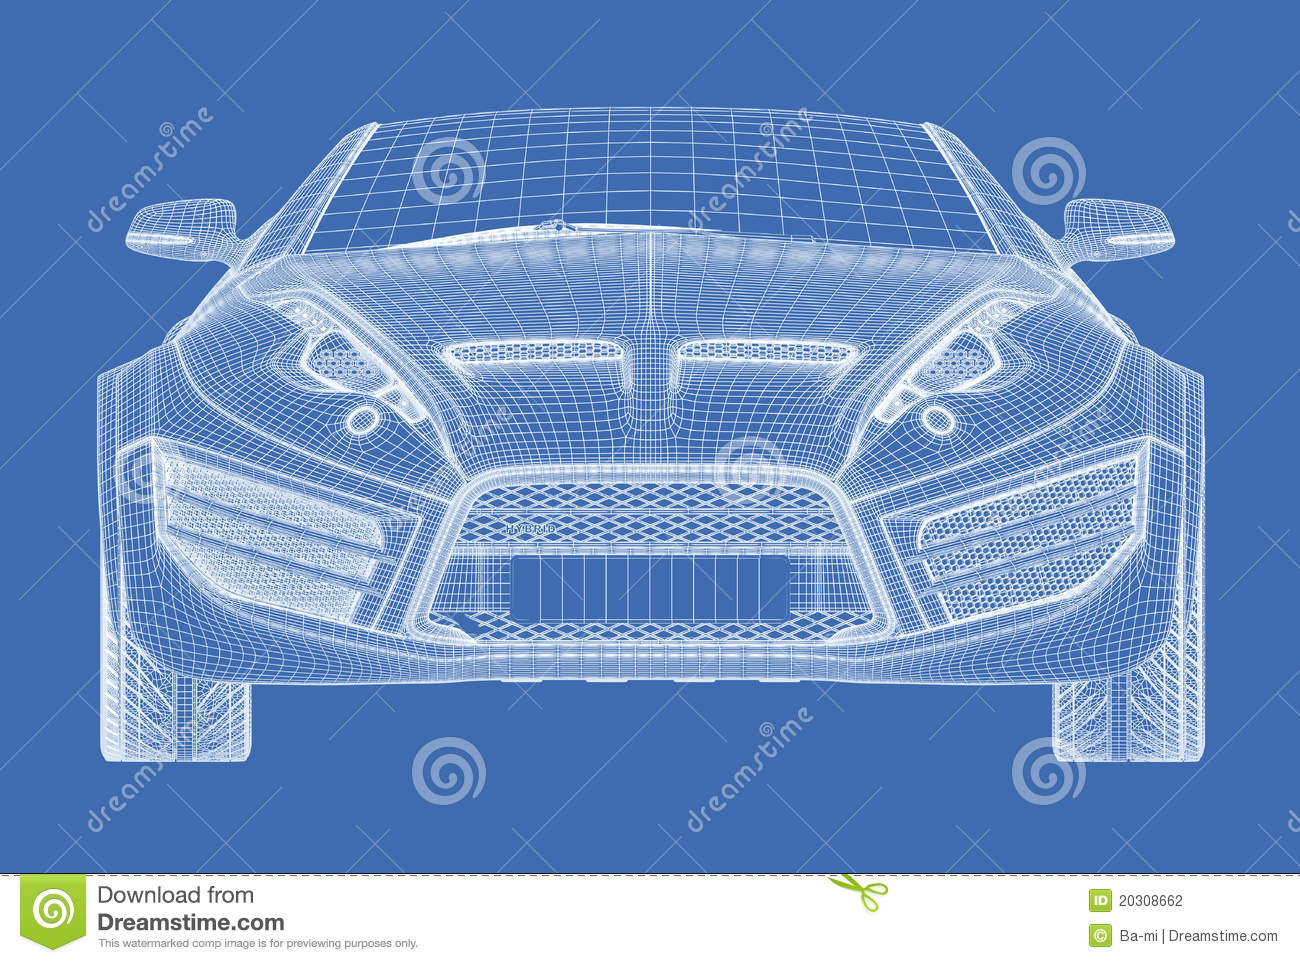 Sports car blueprint stock illustration illustration of wheel sports car blueprint malvernweather Choice Image